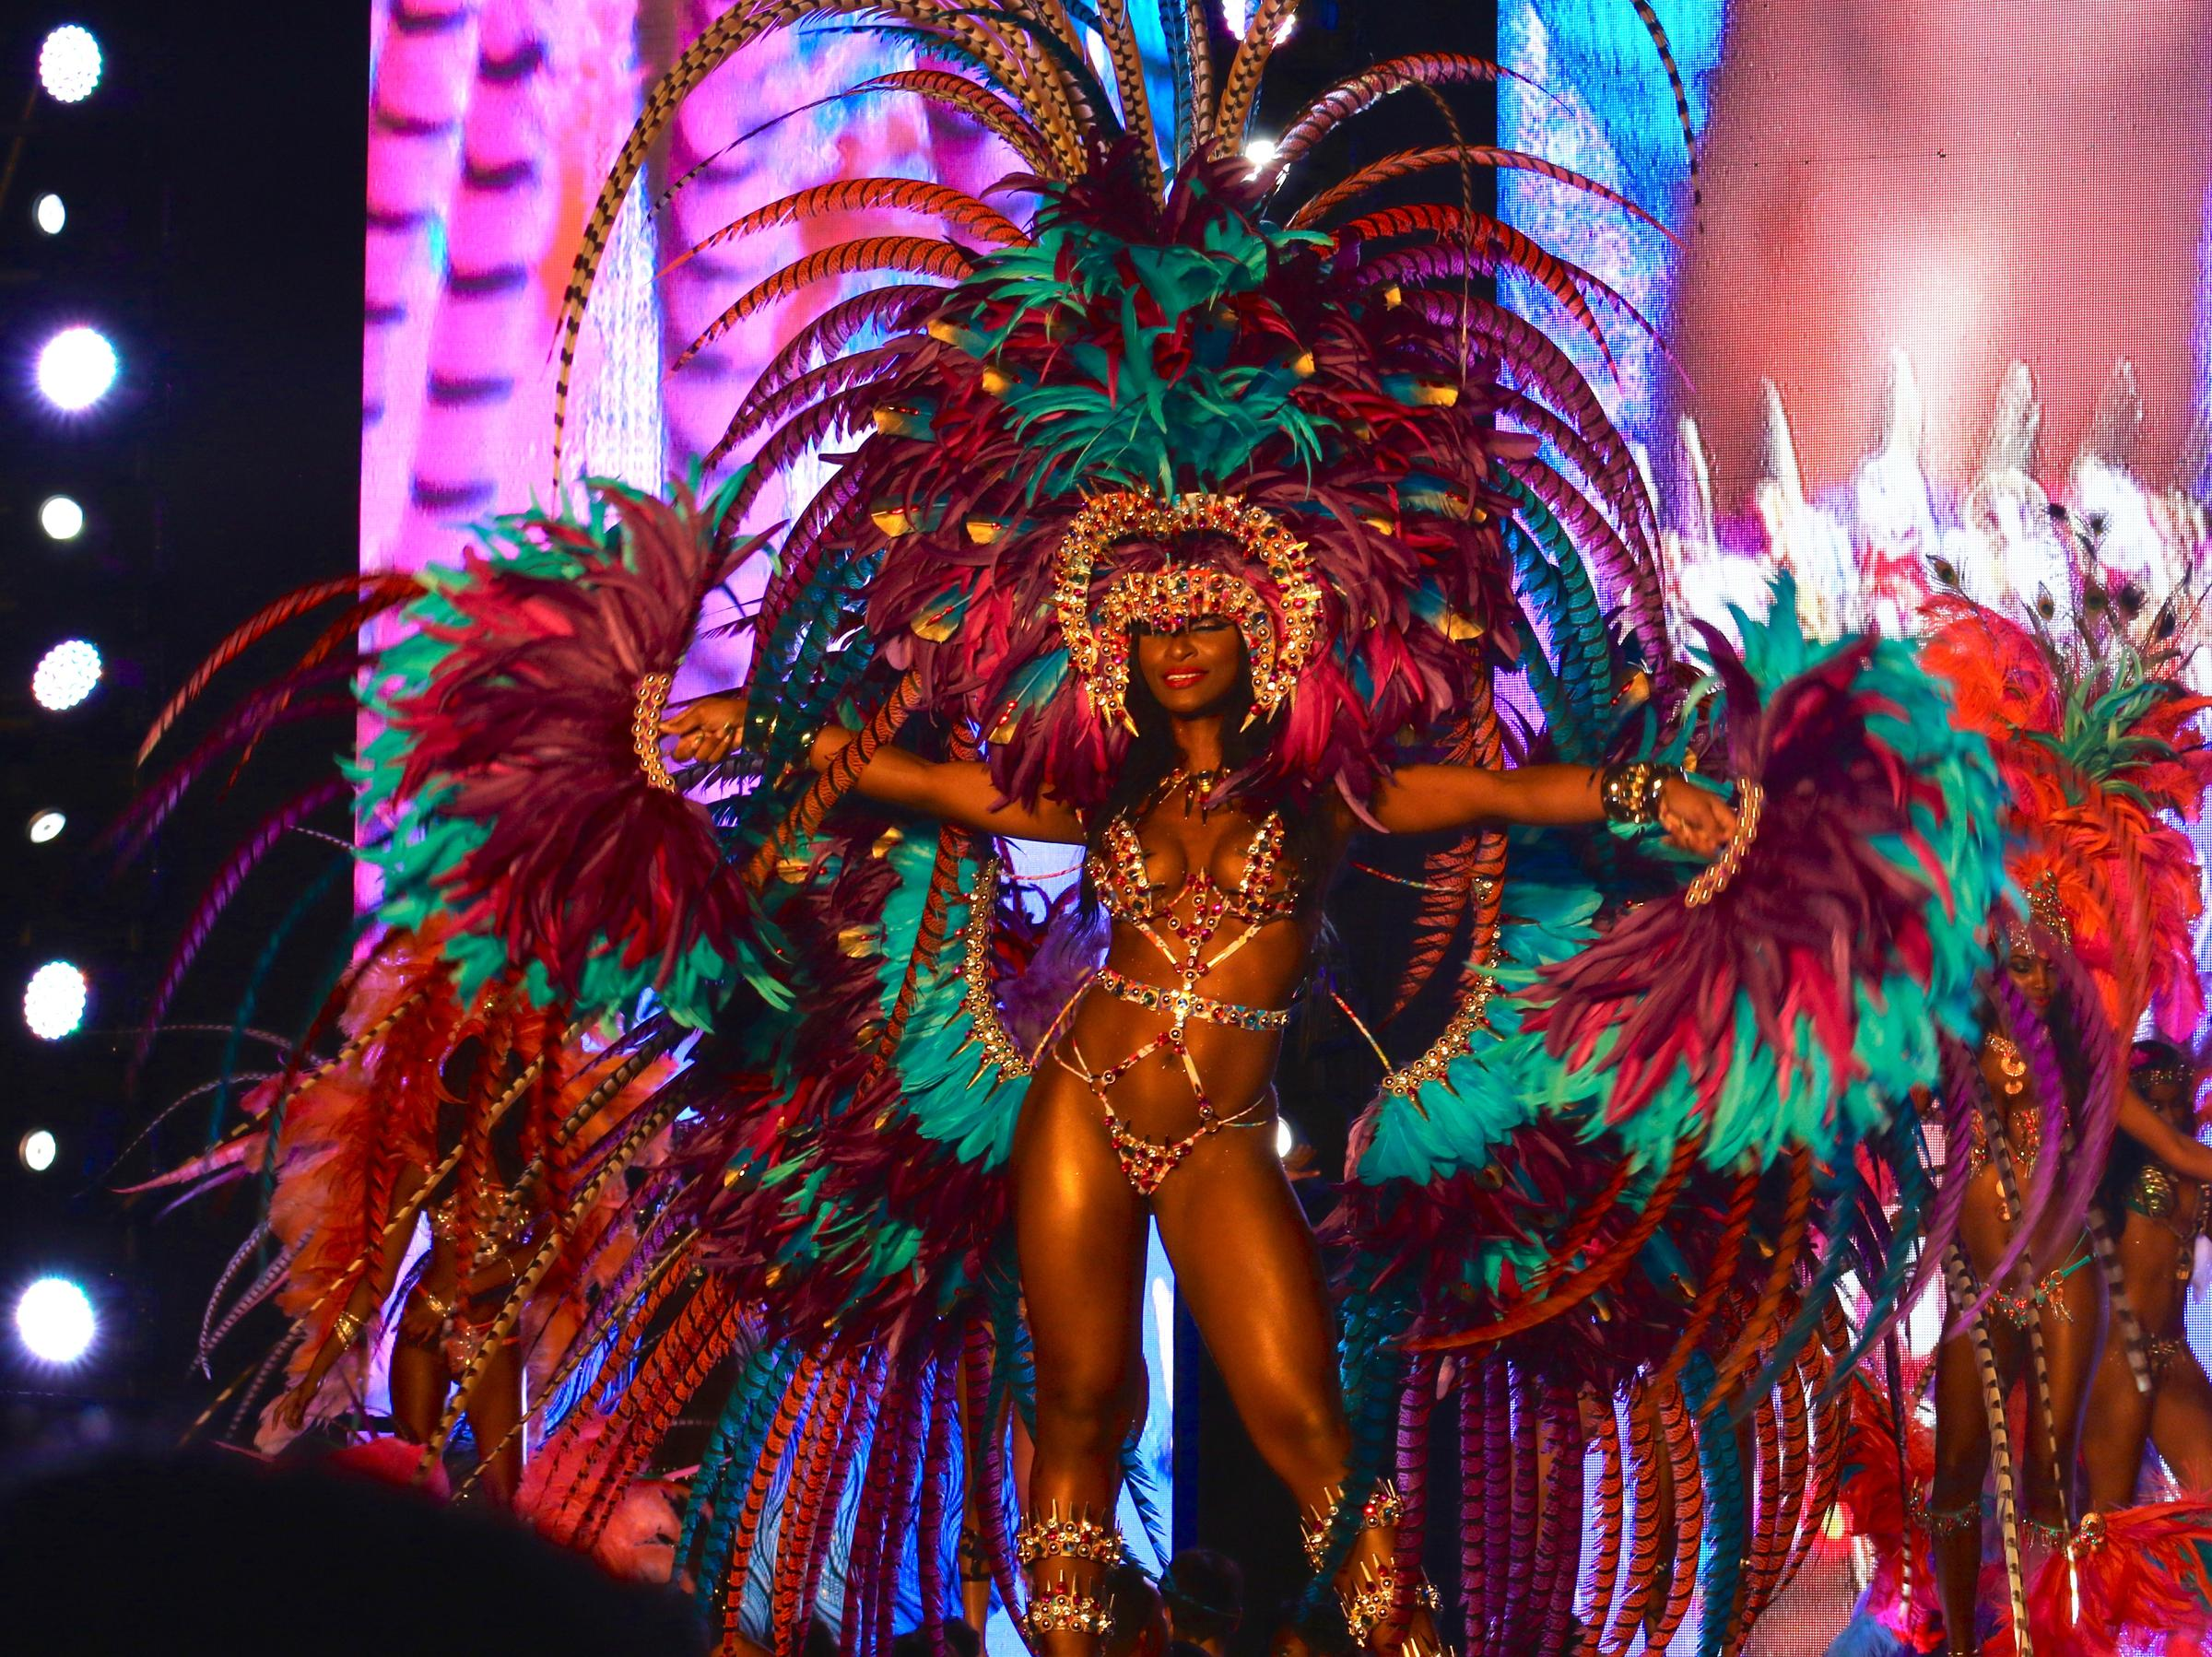 trinidad carnival Find great deals on ebay for trinidad carnival costumes and brazilian carnival costume shop with confidence.